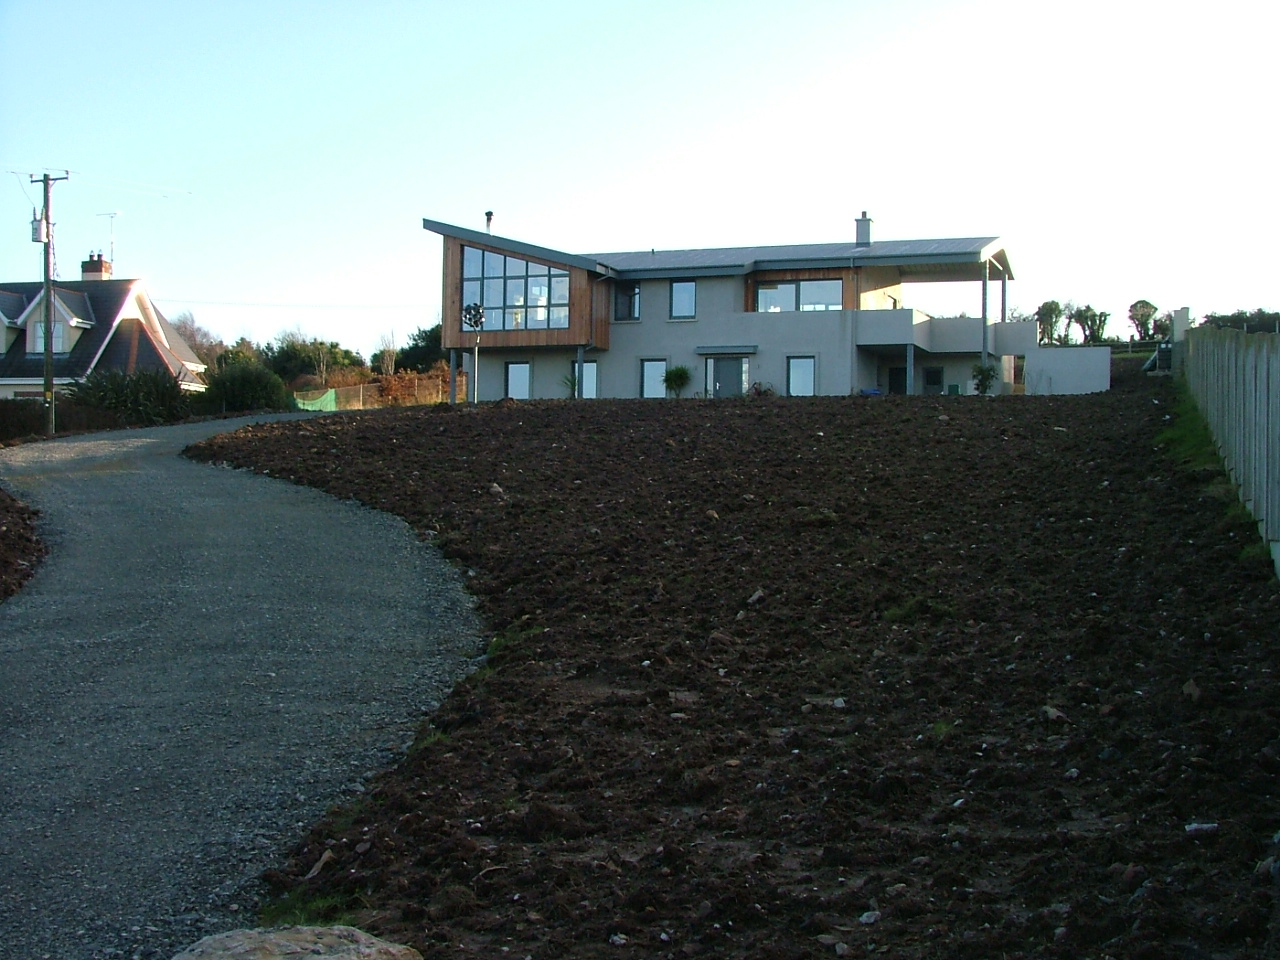 Residential property in Forth Commons